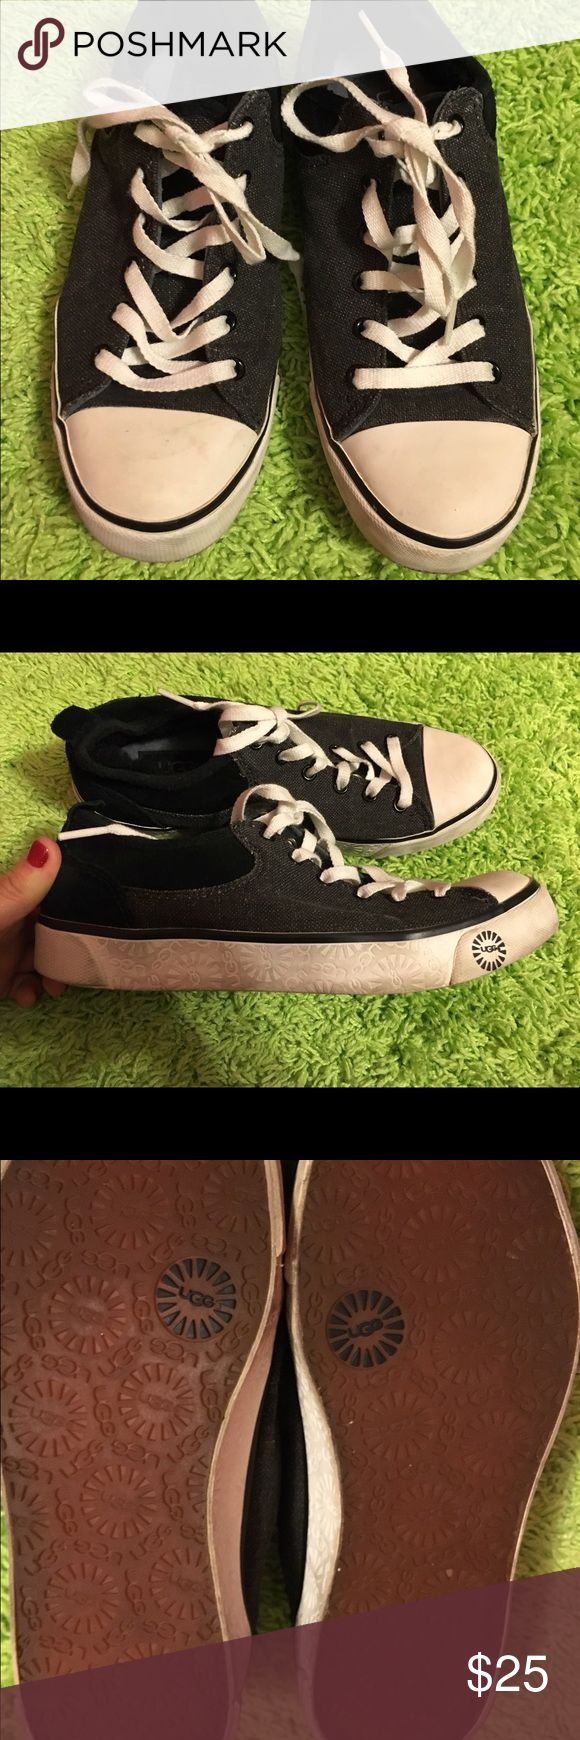 Ugg sneakers. Ugg sneakers. Color is black with gray. Used twice. Price is firm. UGG Shoes Sneakers